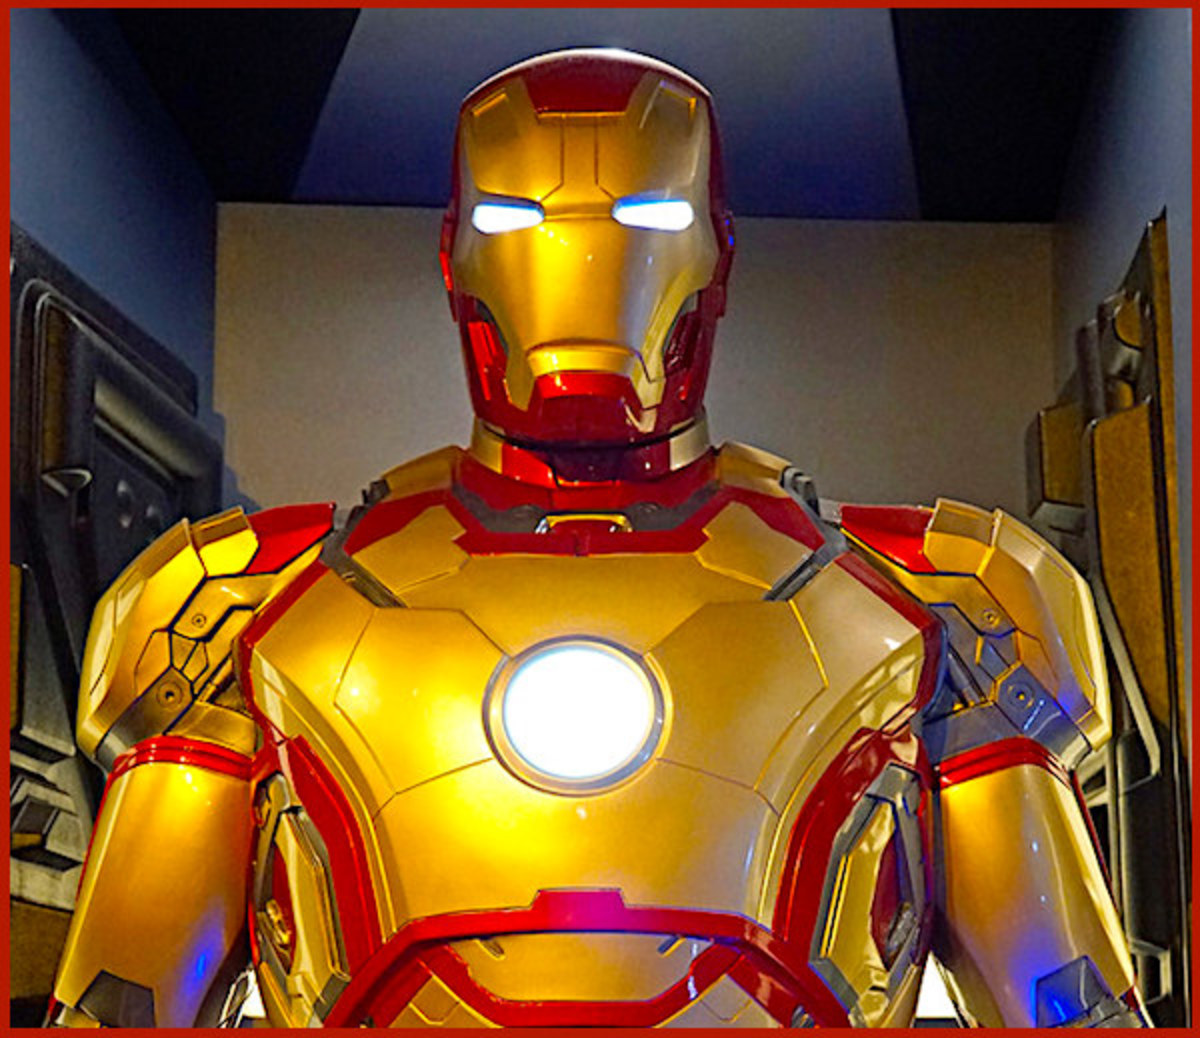 Photos signed by Robert Downey, Jr. in character as Ironman can be worth $200 to $300.